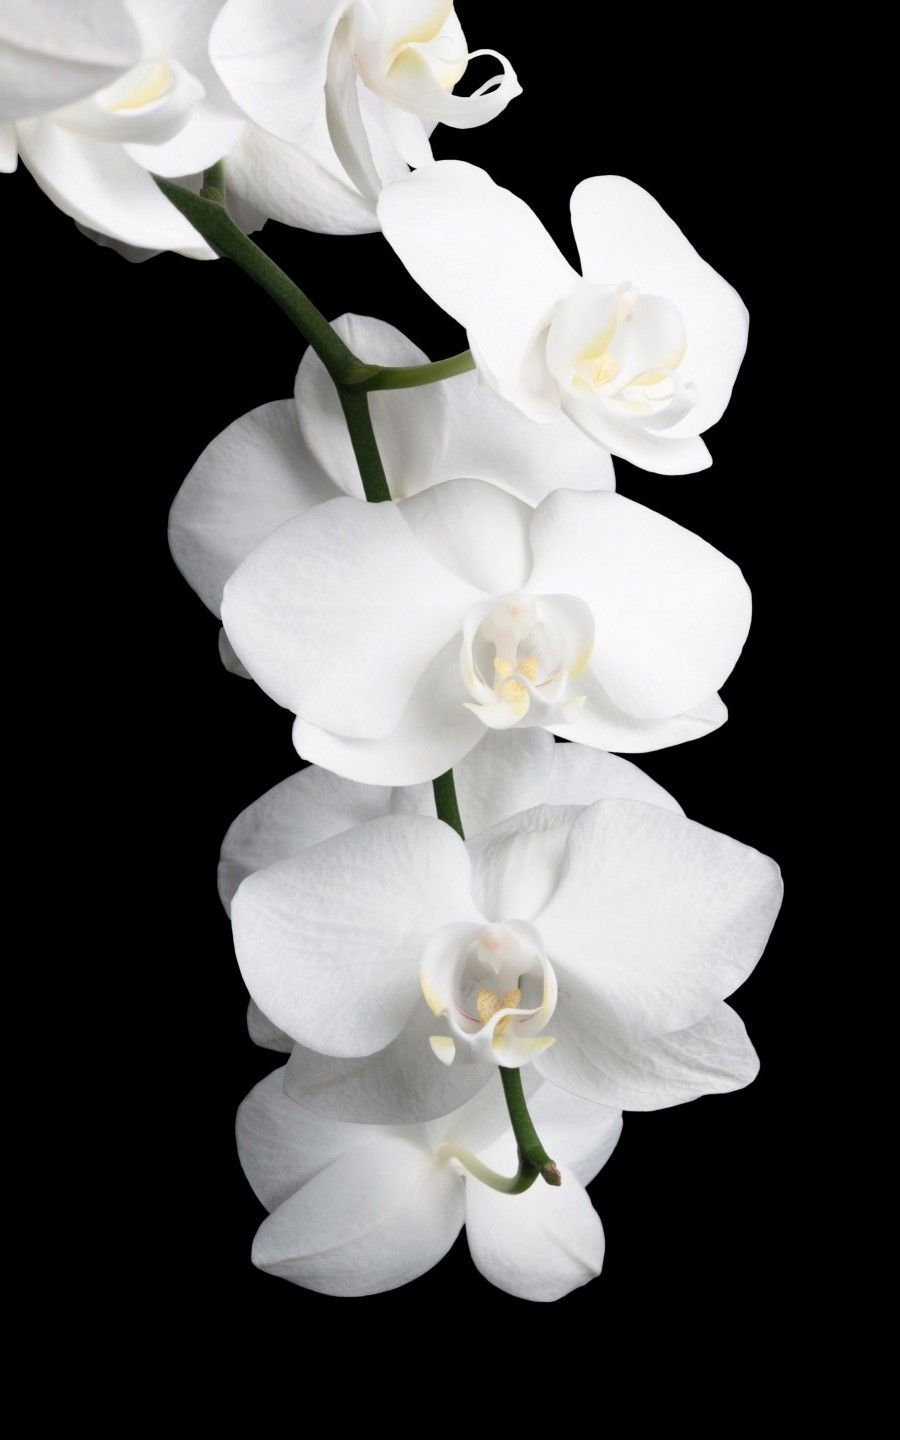 Pin By Zenology On Roses Are Roses Orchid Wallpaper Black And White Flowers Orchid Flower